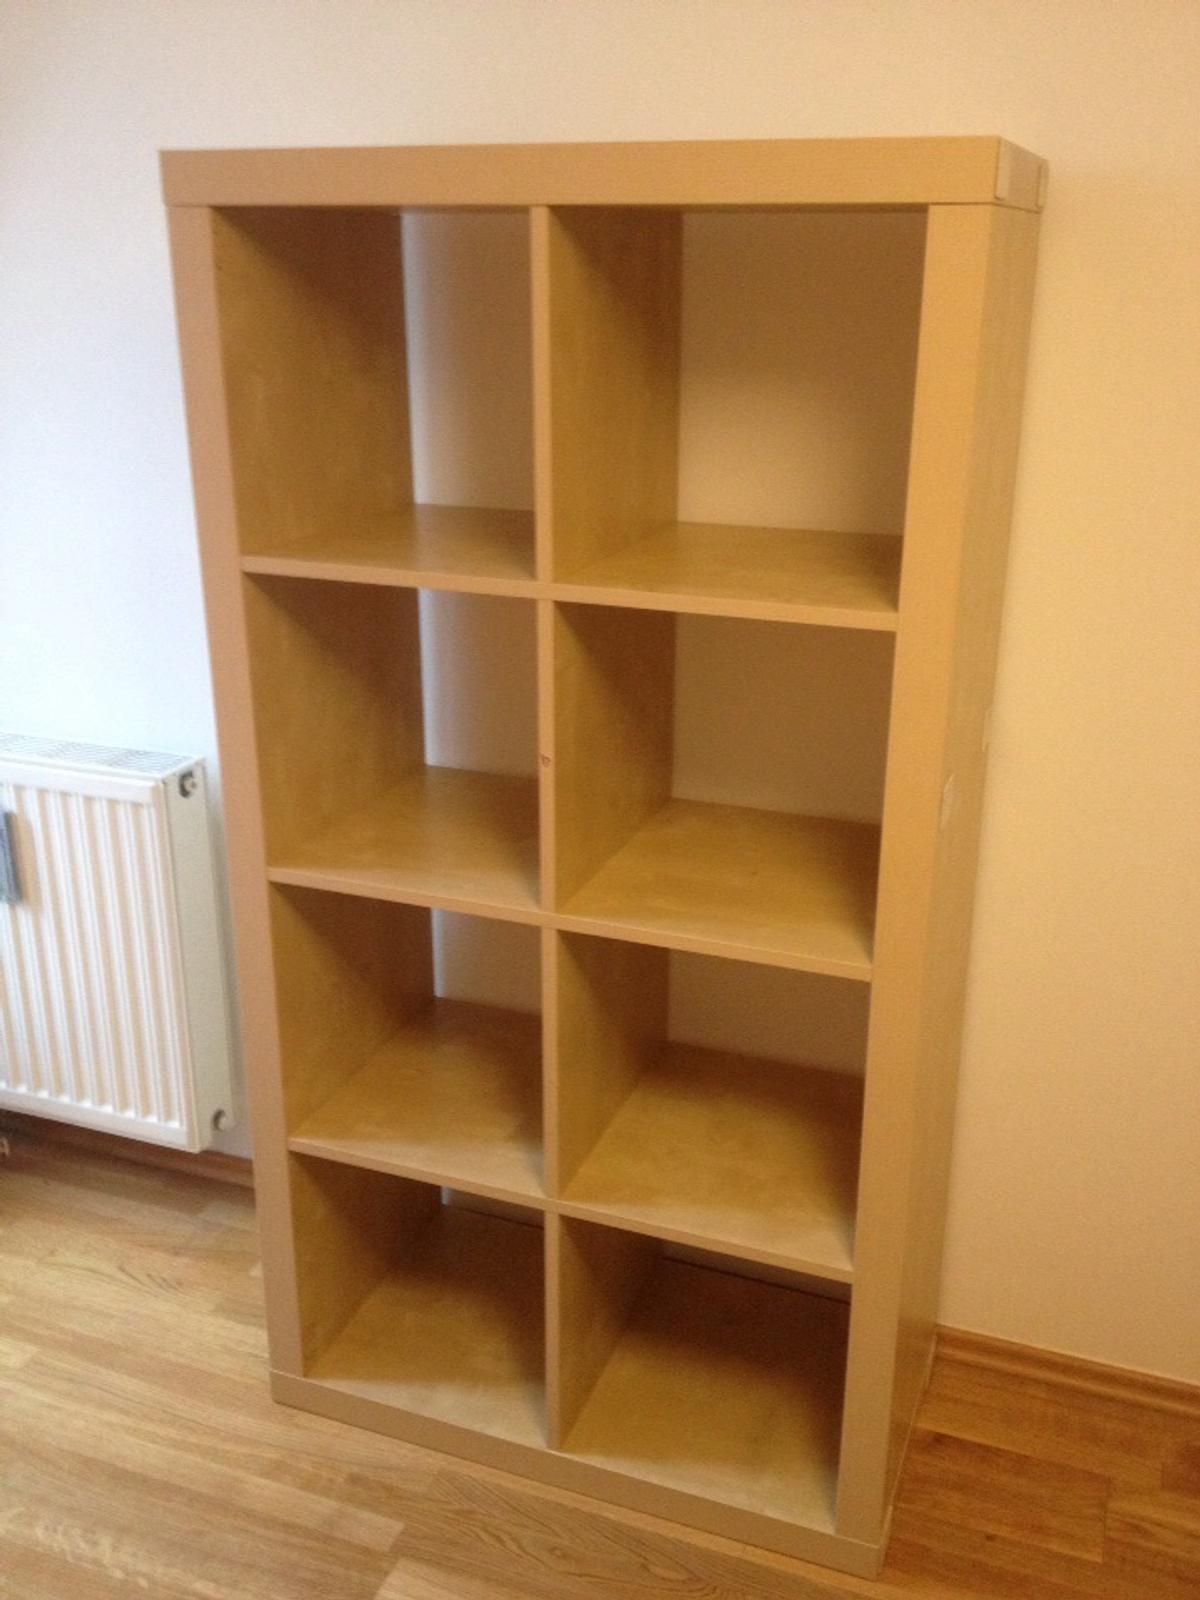 Regal Birke Ikea Expedit Regal Birke (jetzt Kallax) In 80337 München For €15.00 For Sale | Shpock